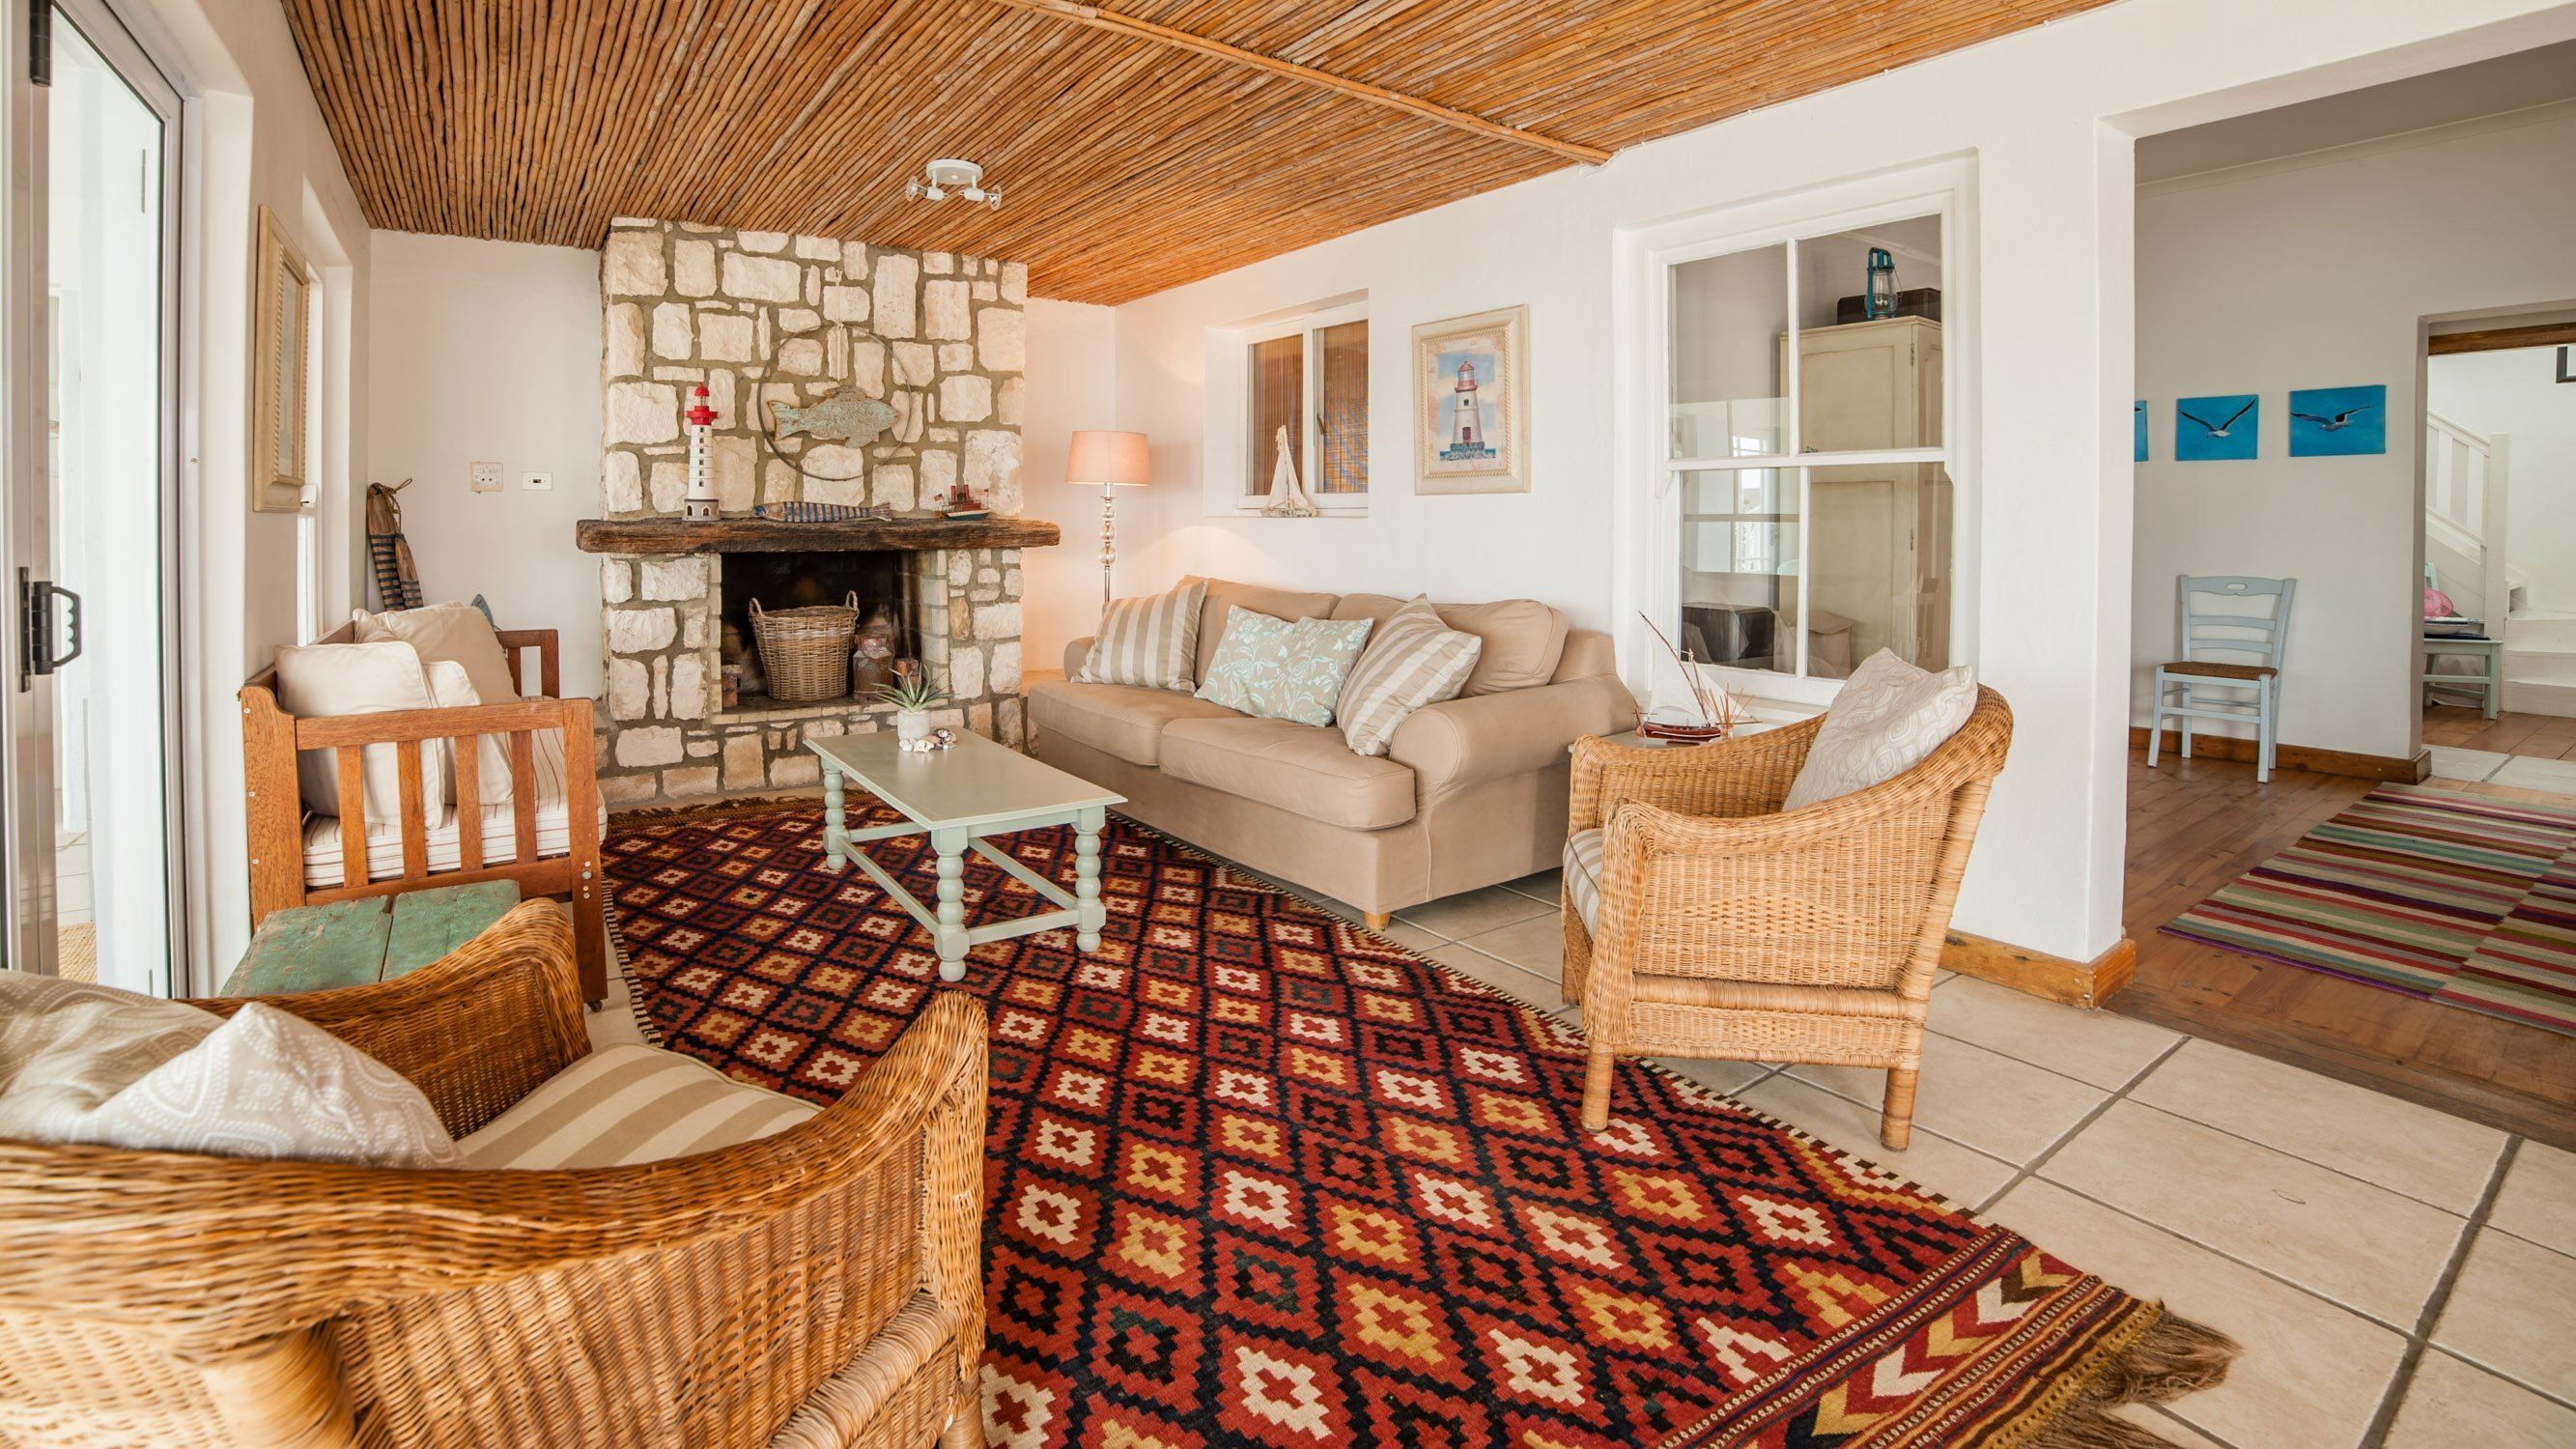 charel-schreuder-photography-property-photography-lounge-area